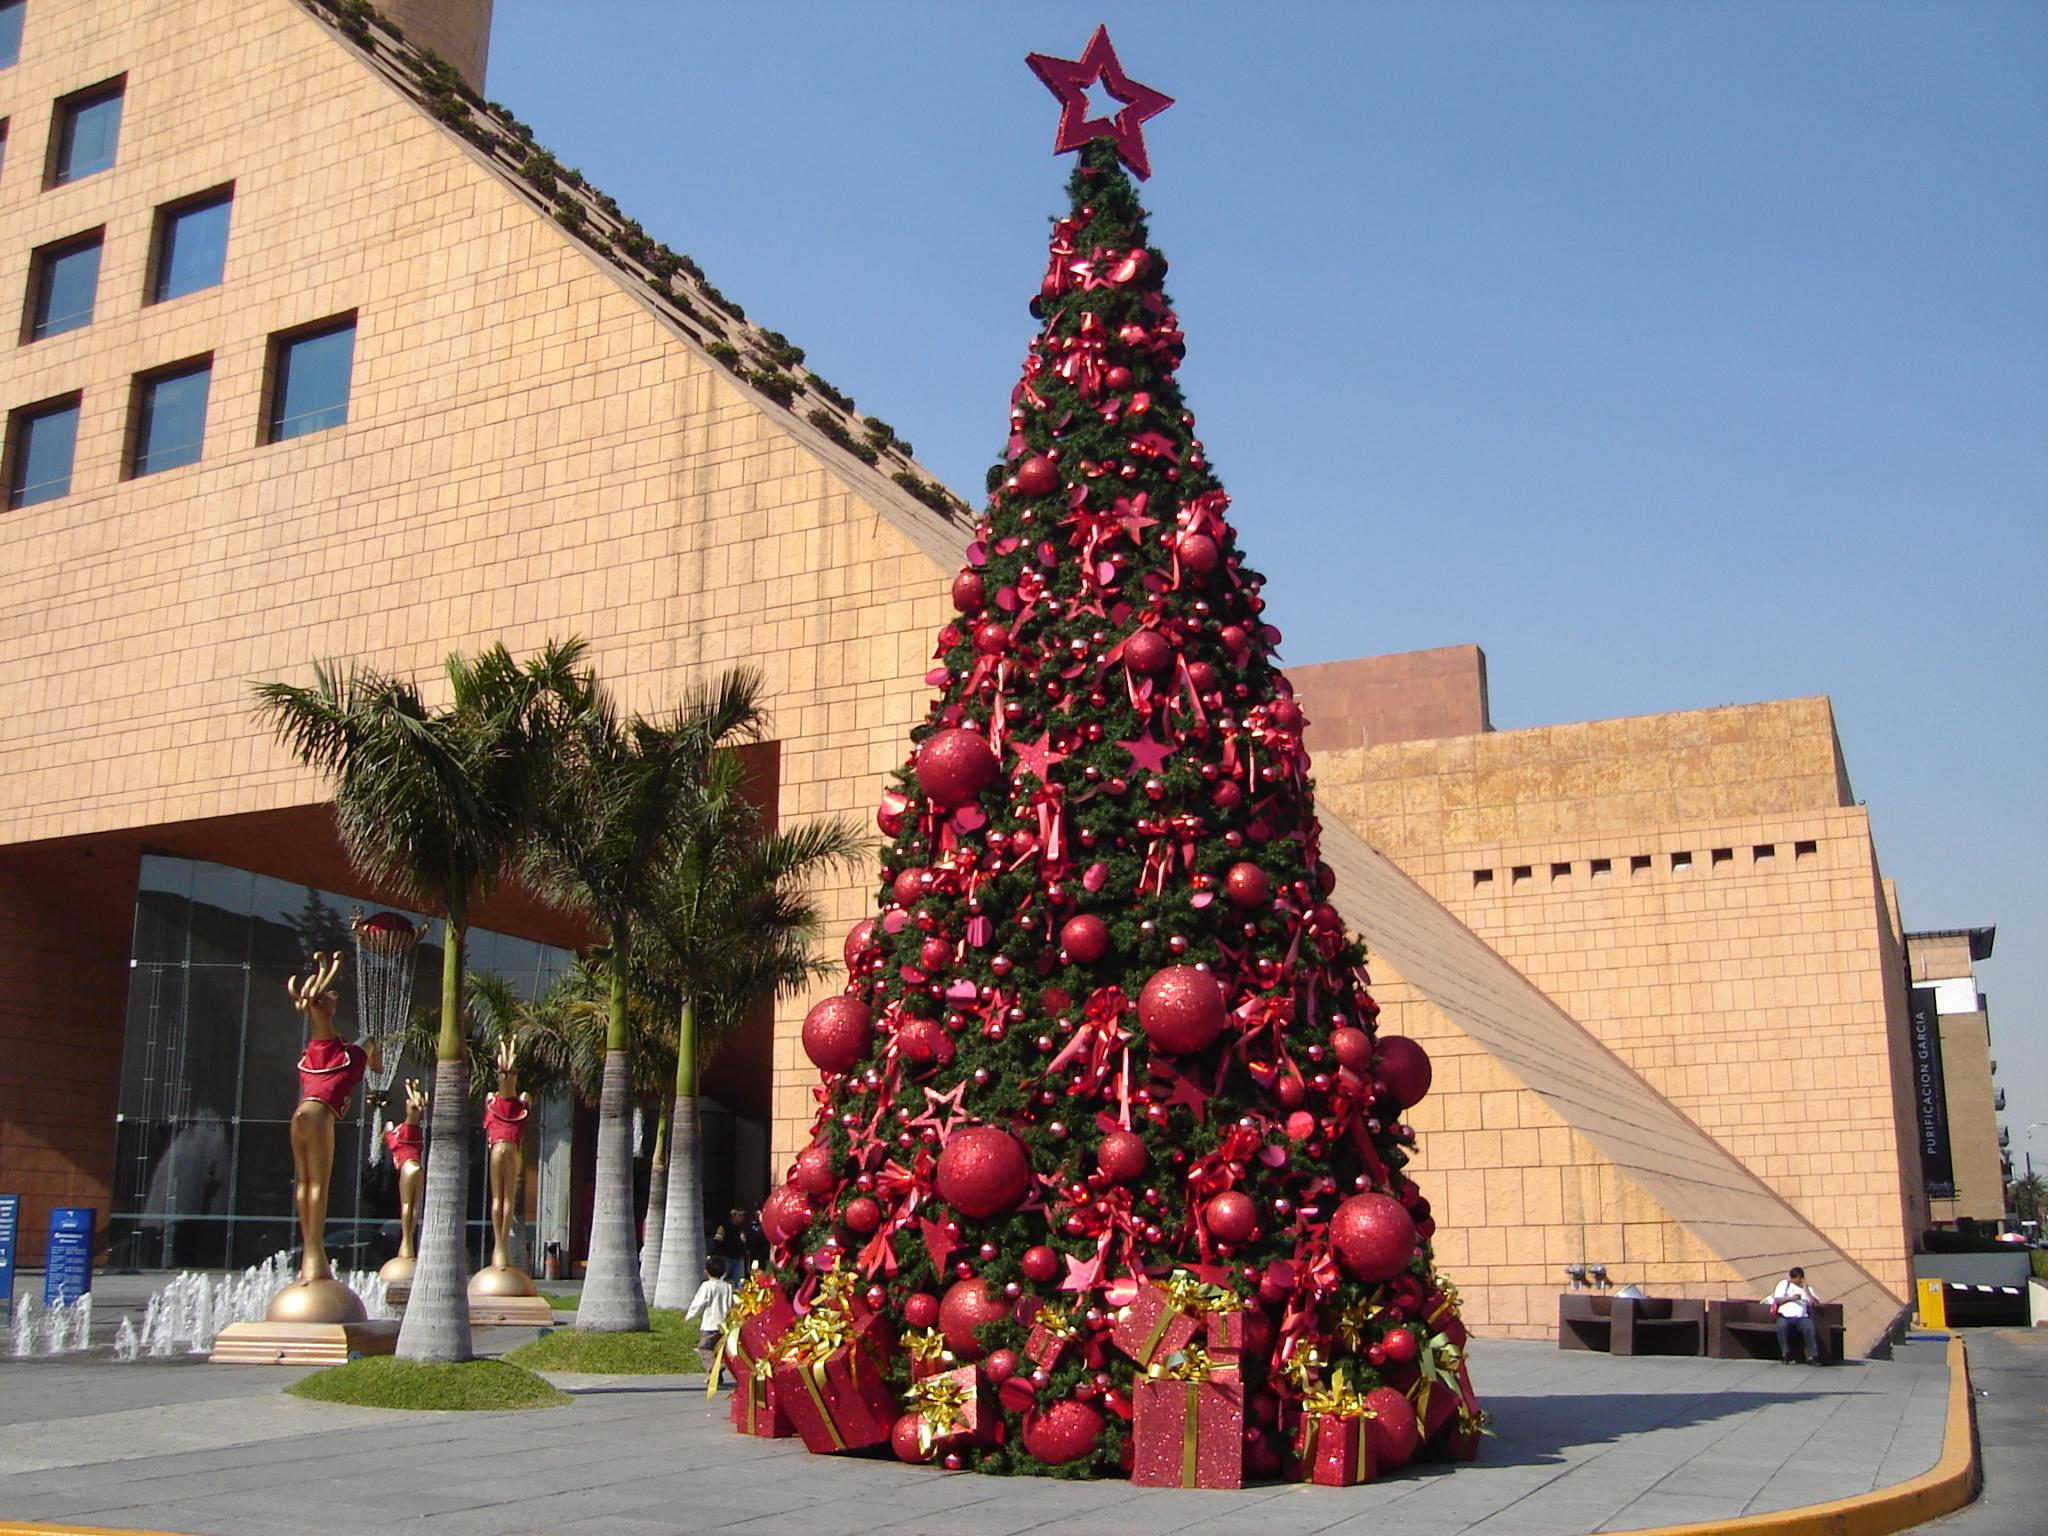 Traditional mexican christmas decorations - Christmas Tree Outside A Shopping Centre In Mexico City Kiewic Flickr